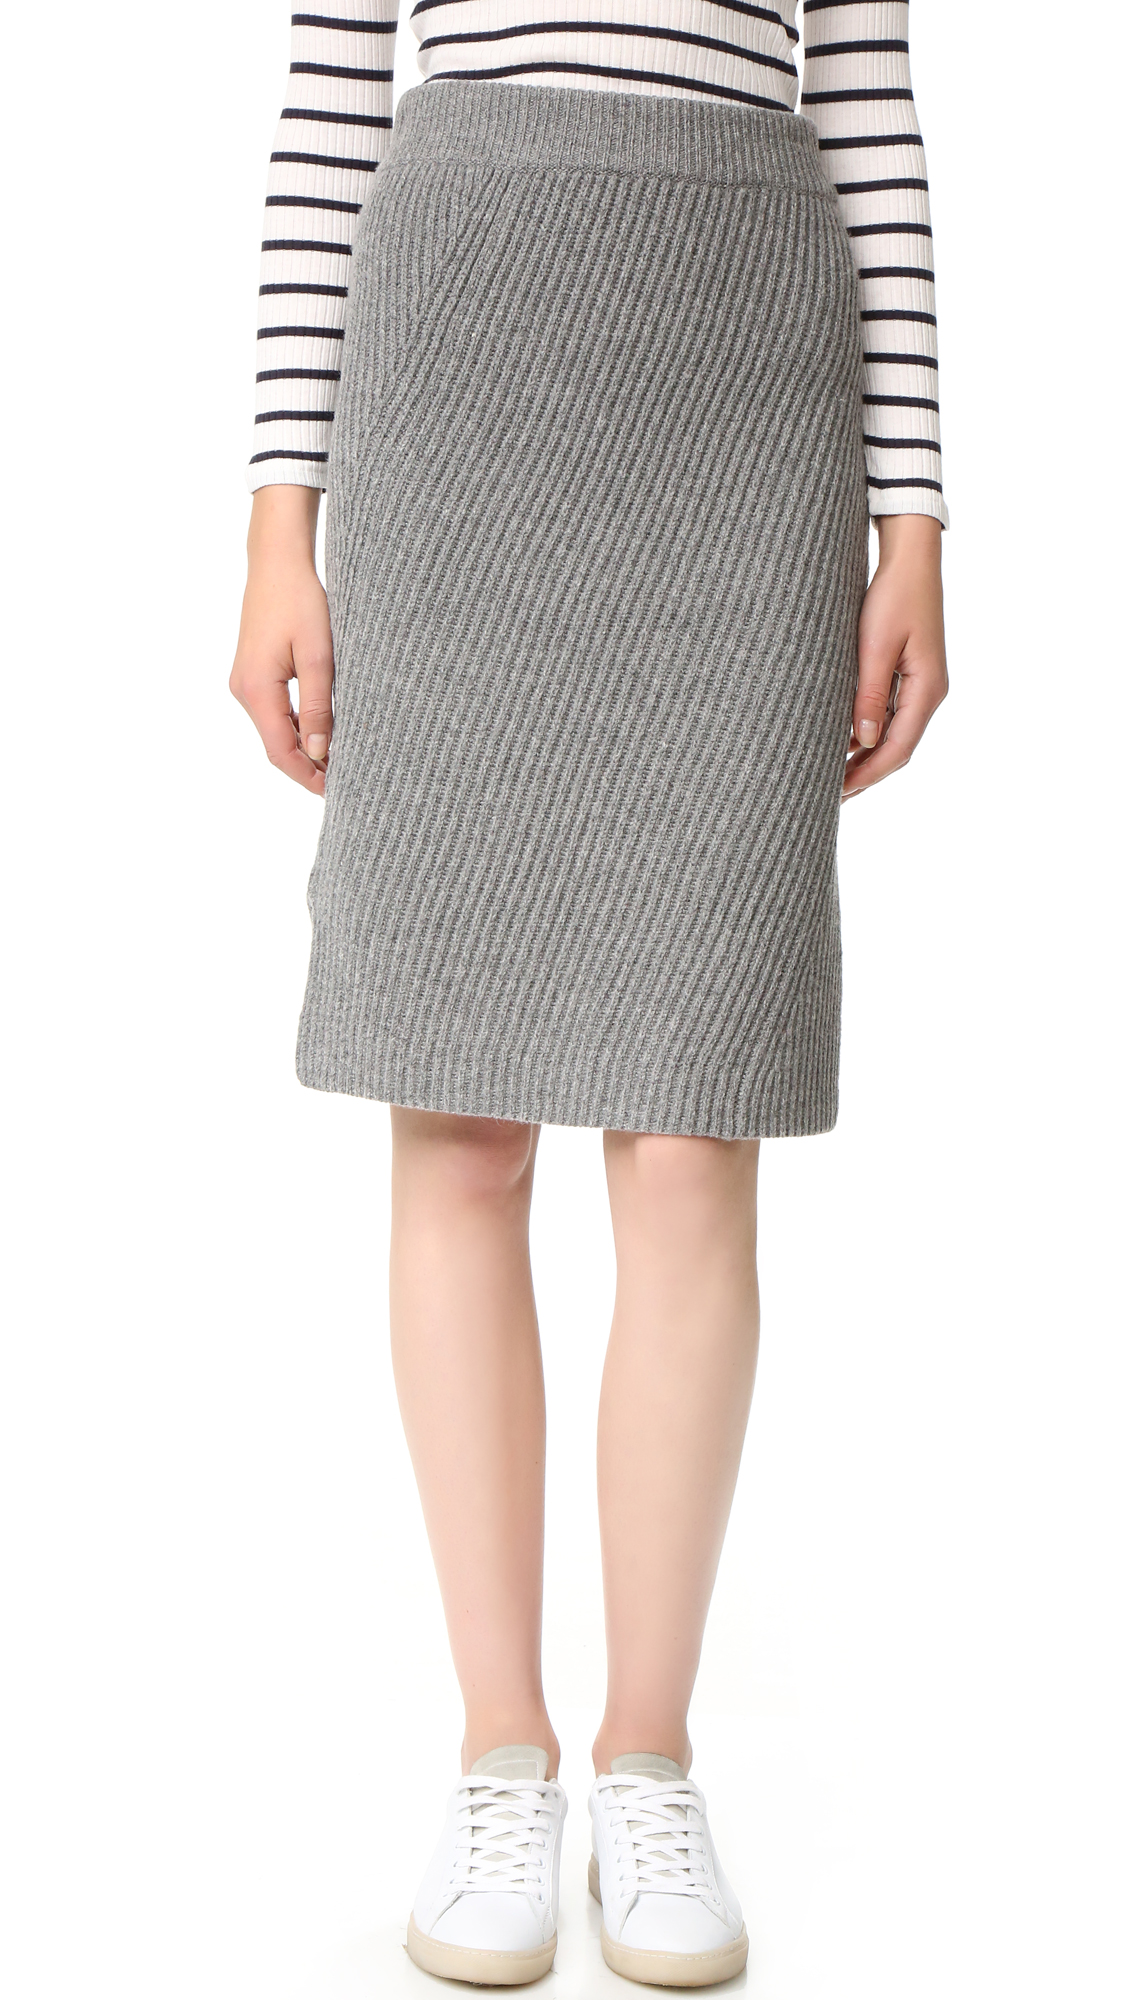 dcd4ead12 Madewell Rib Sweater Skirt | SHOPBOP